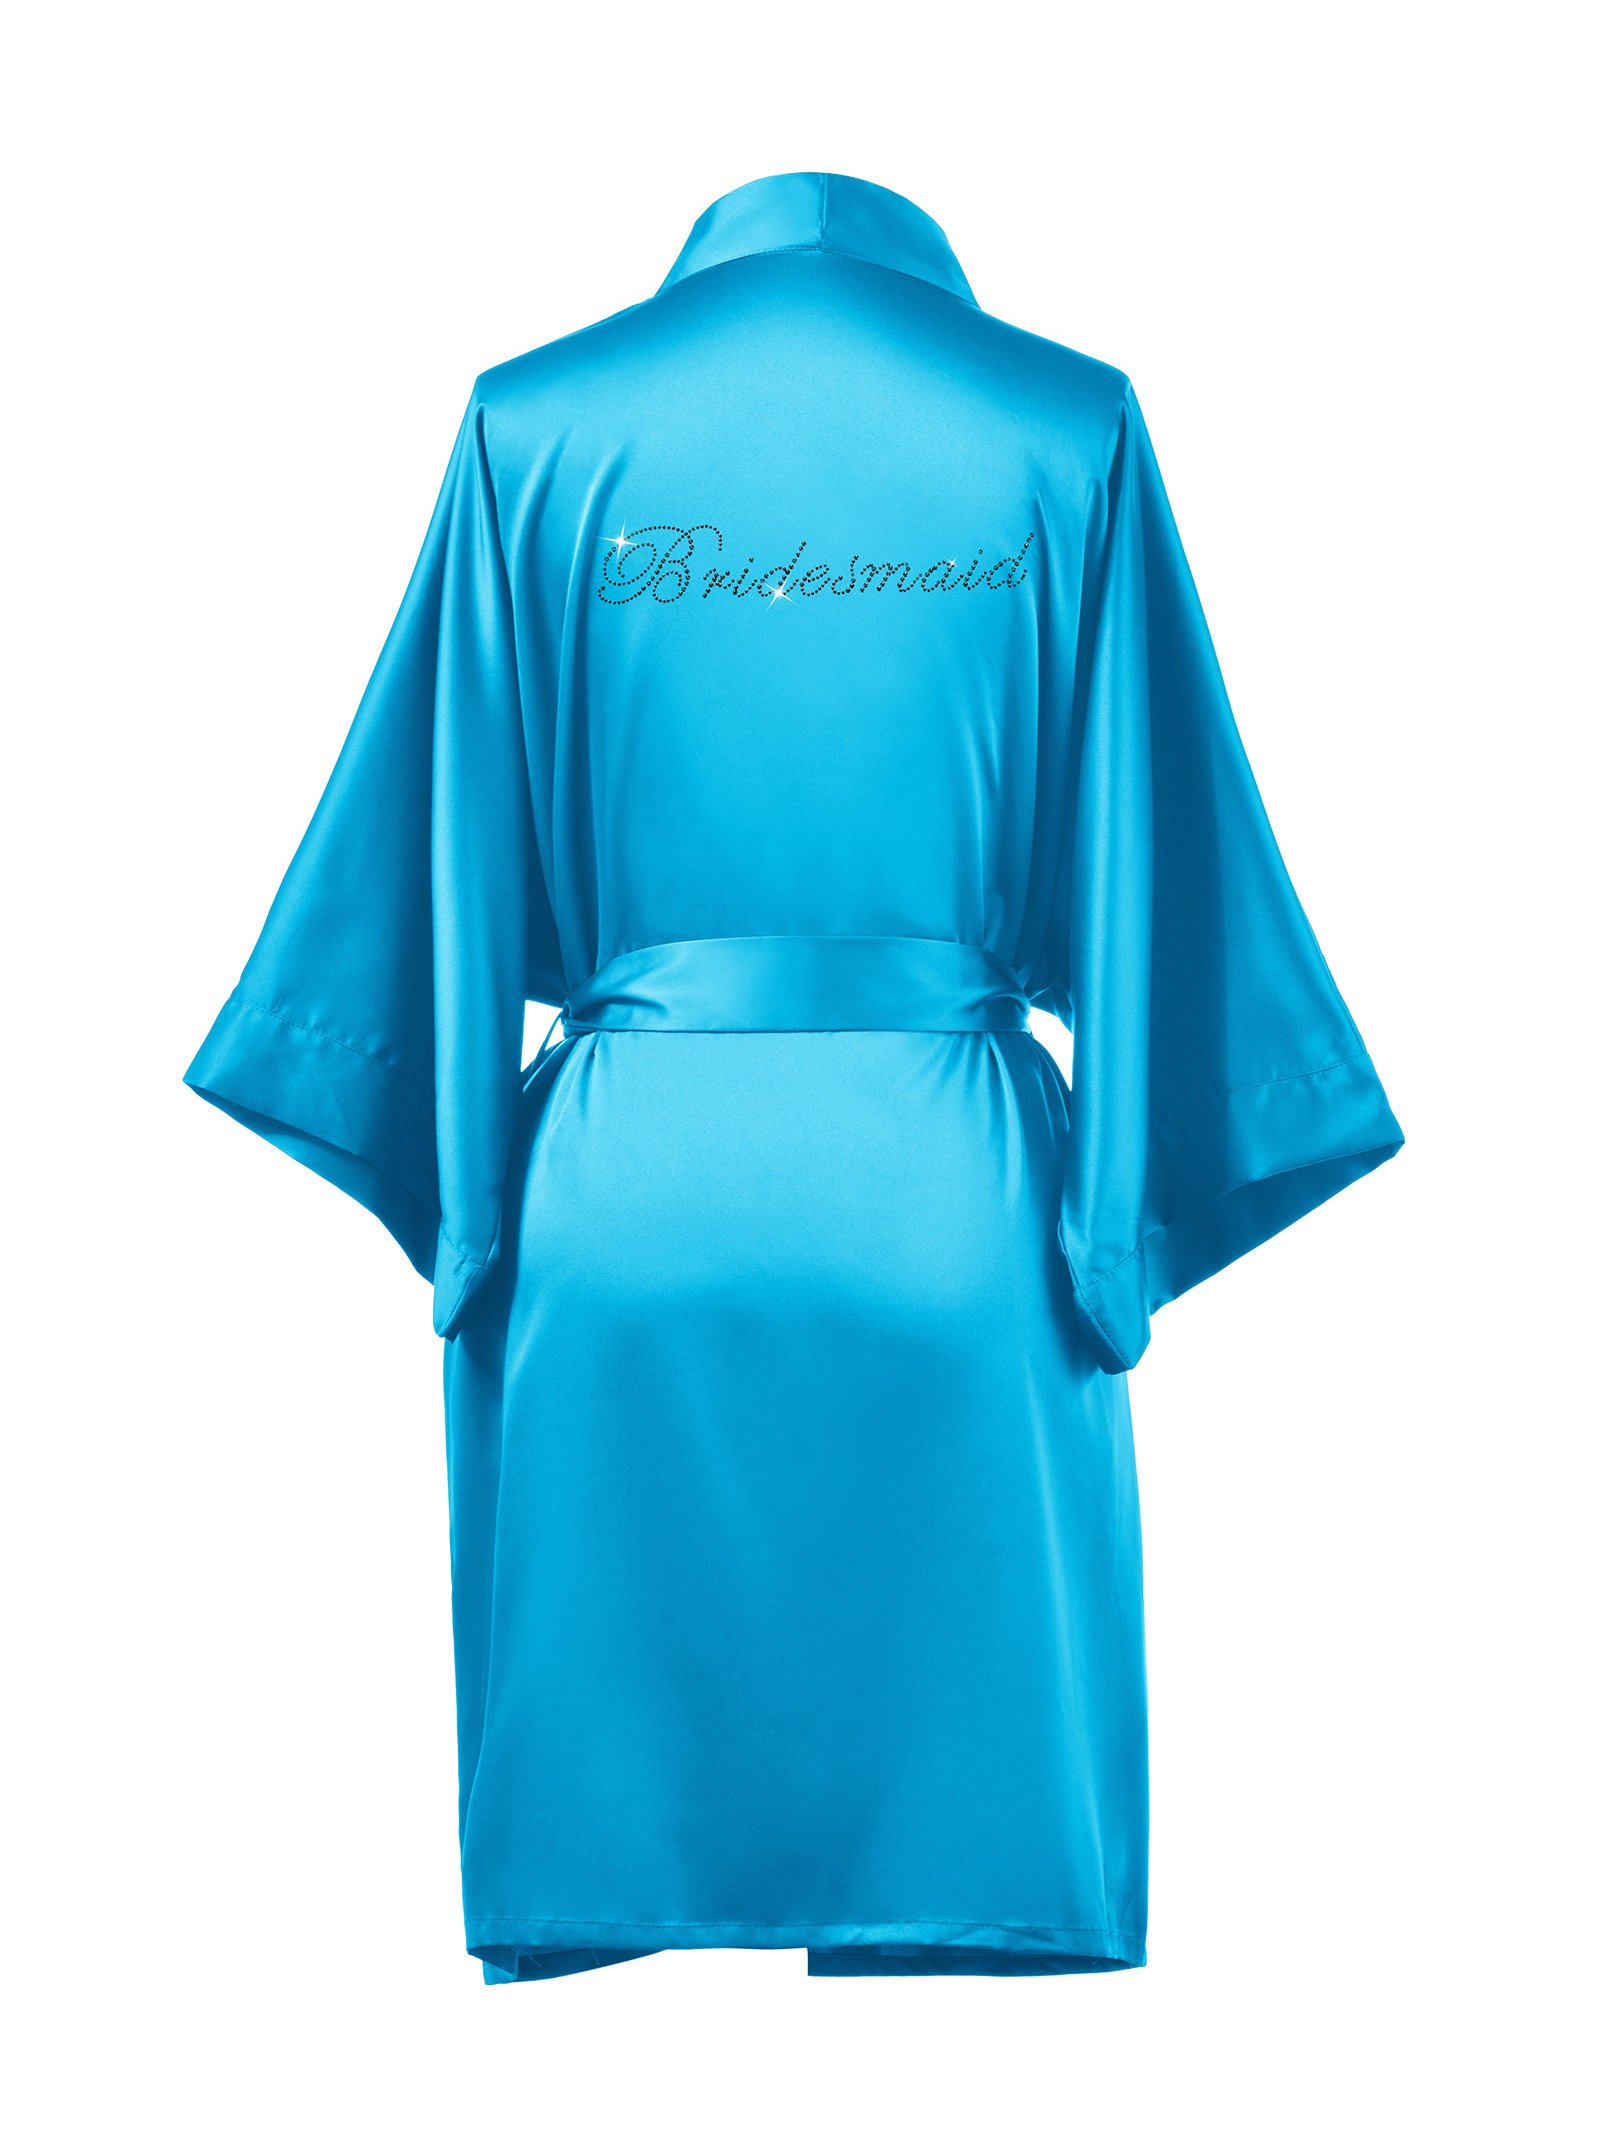 AWEI Satin Bridesmaid Robes Short Bridal Robes for Bridesmaid Gifts Soft Womens Kimono Robe Sky Blue M//ZS1604CPP03A//